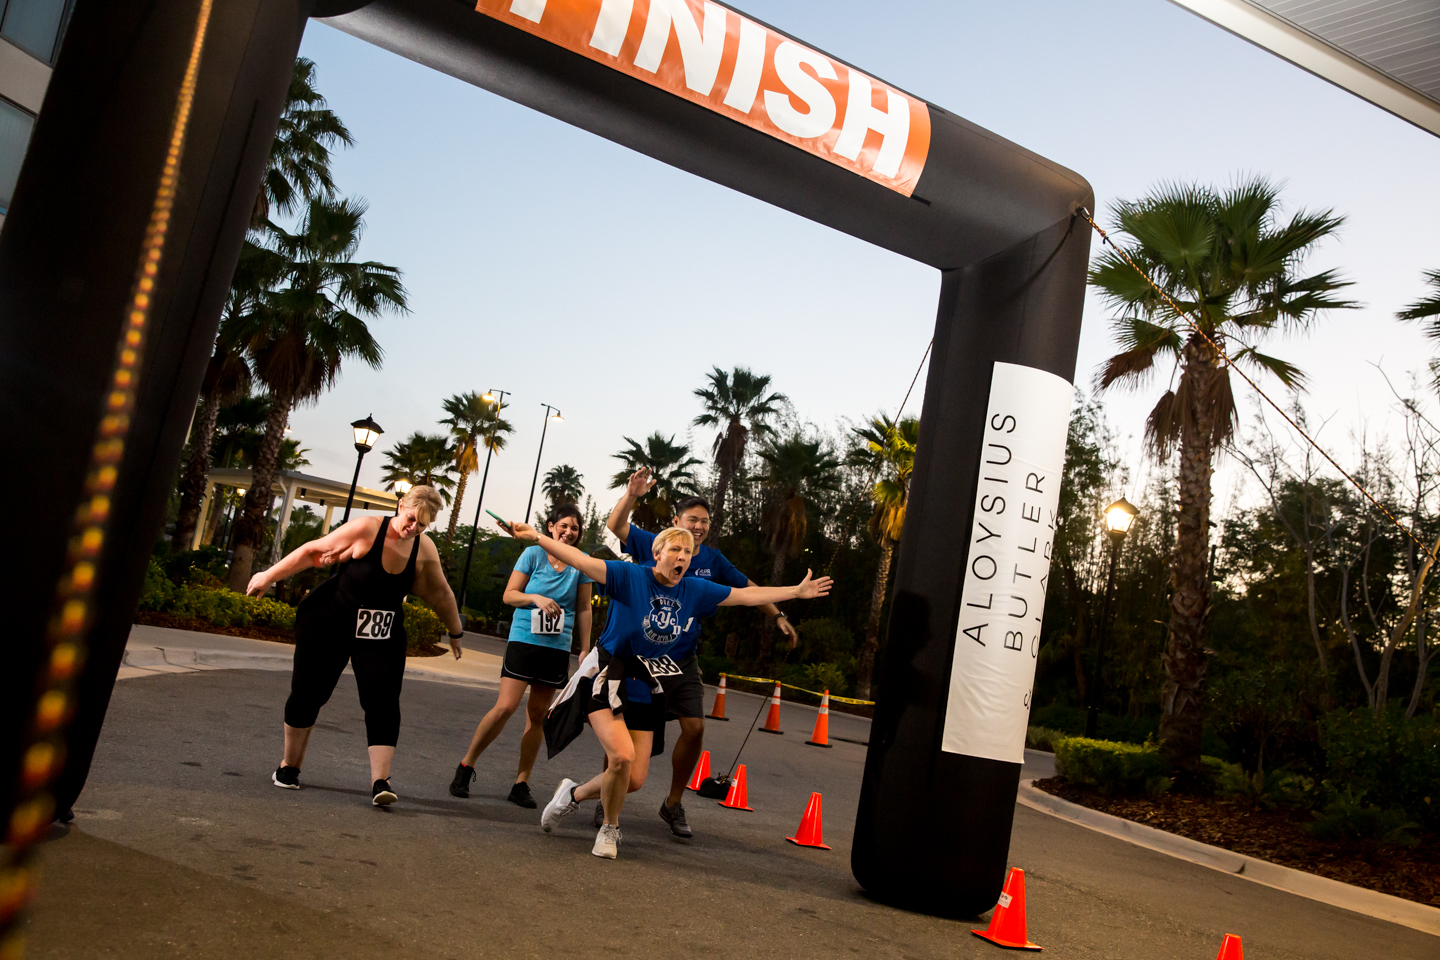 AAPPR-Conference-Expo-Professional-Event-Photography-Photographer-Orlando-lowes-sapphire-falls-resort-universal-5k-118.jpg